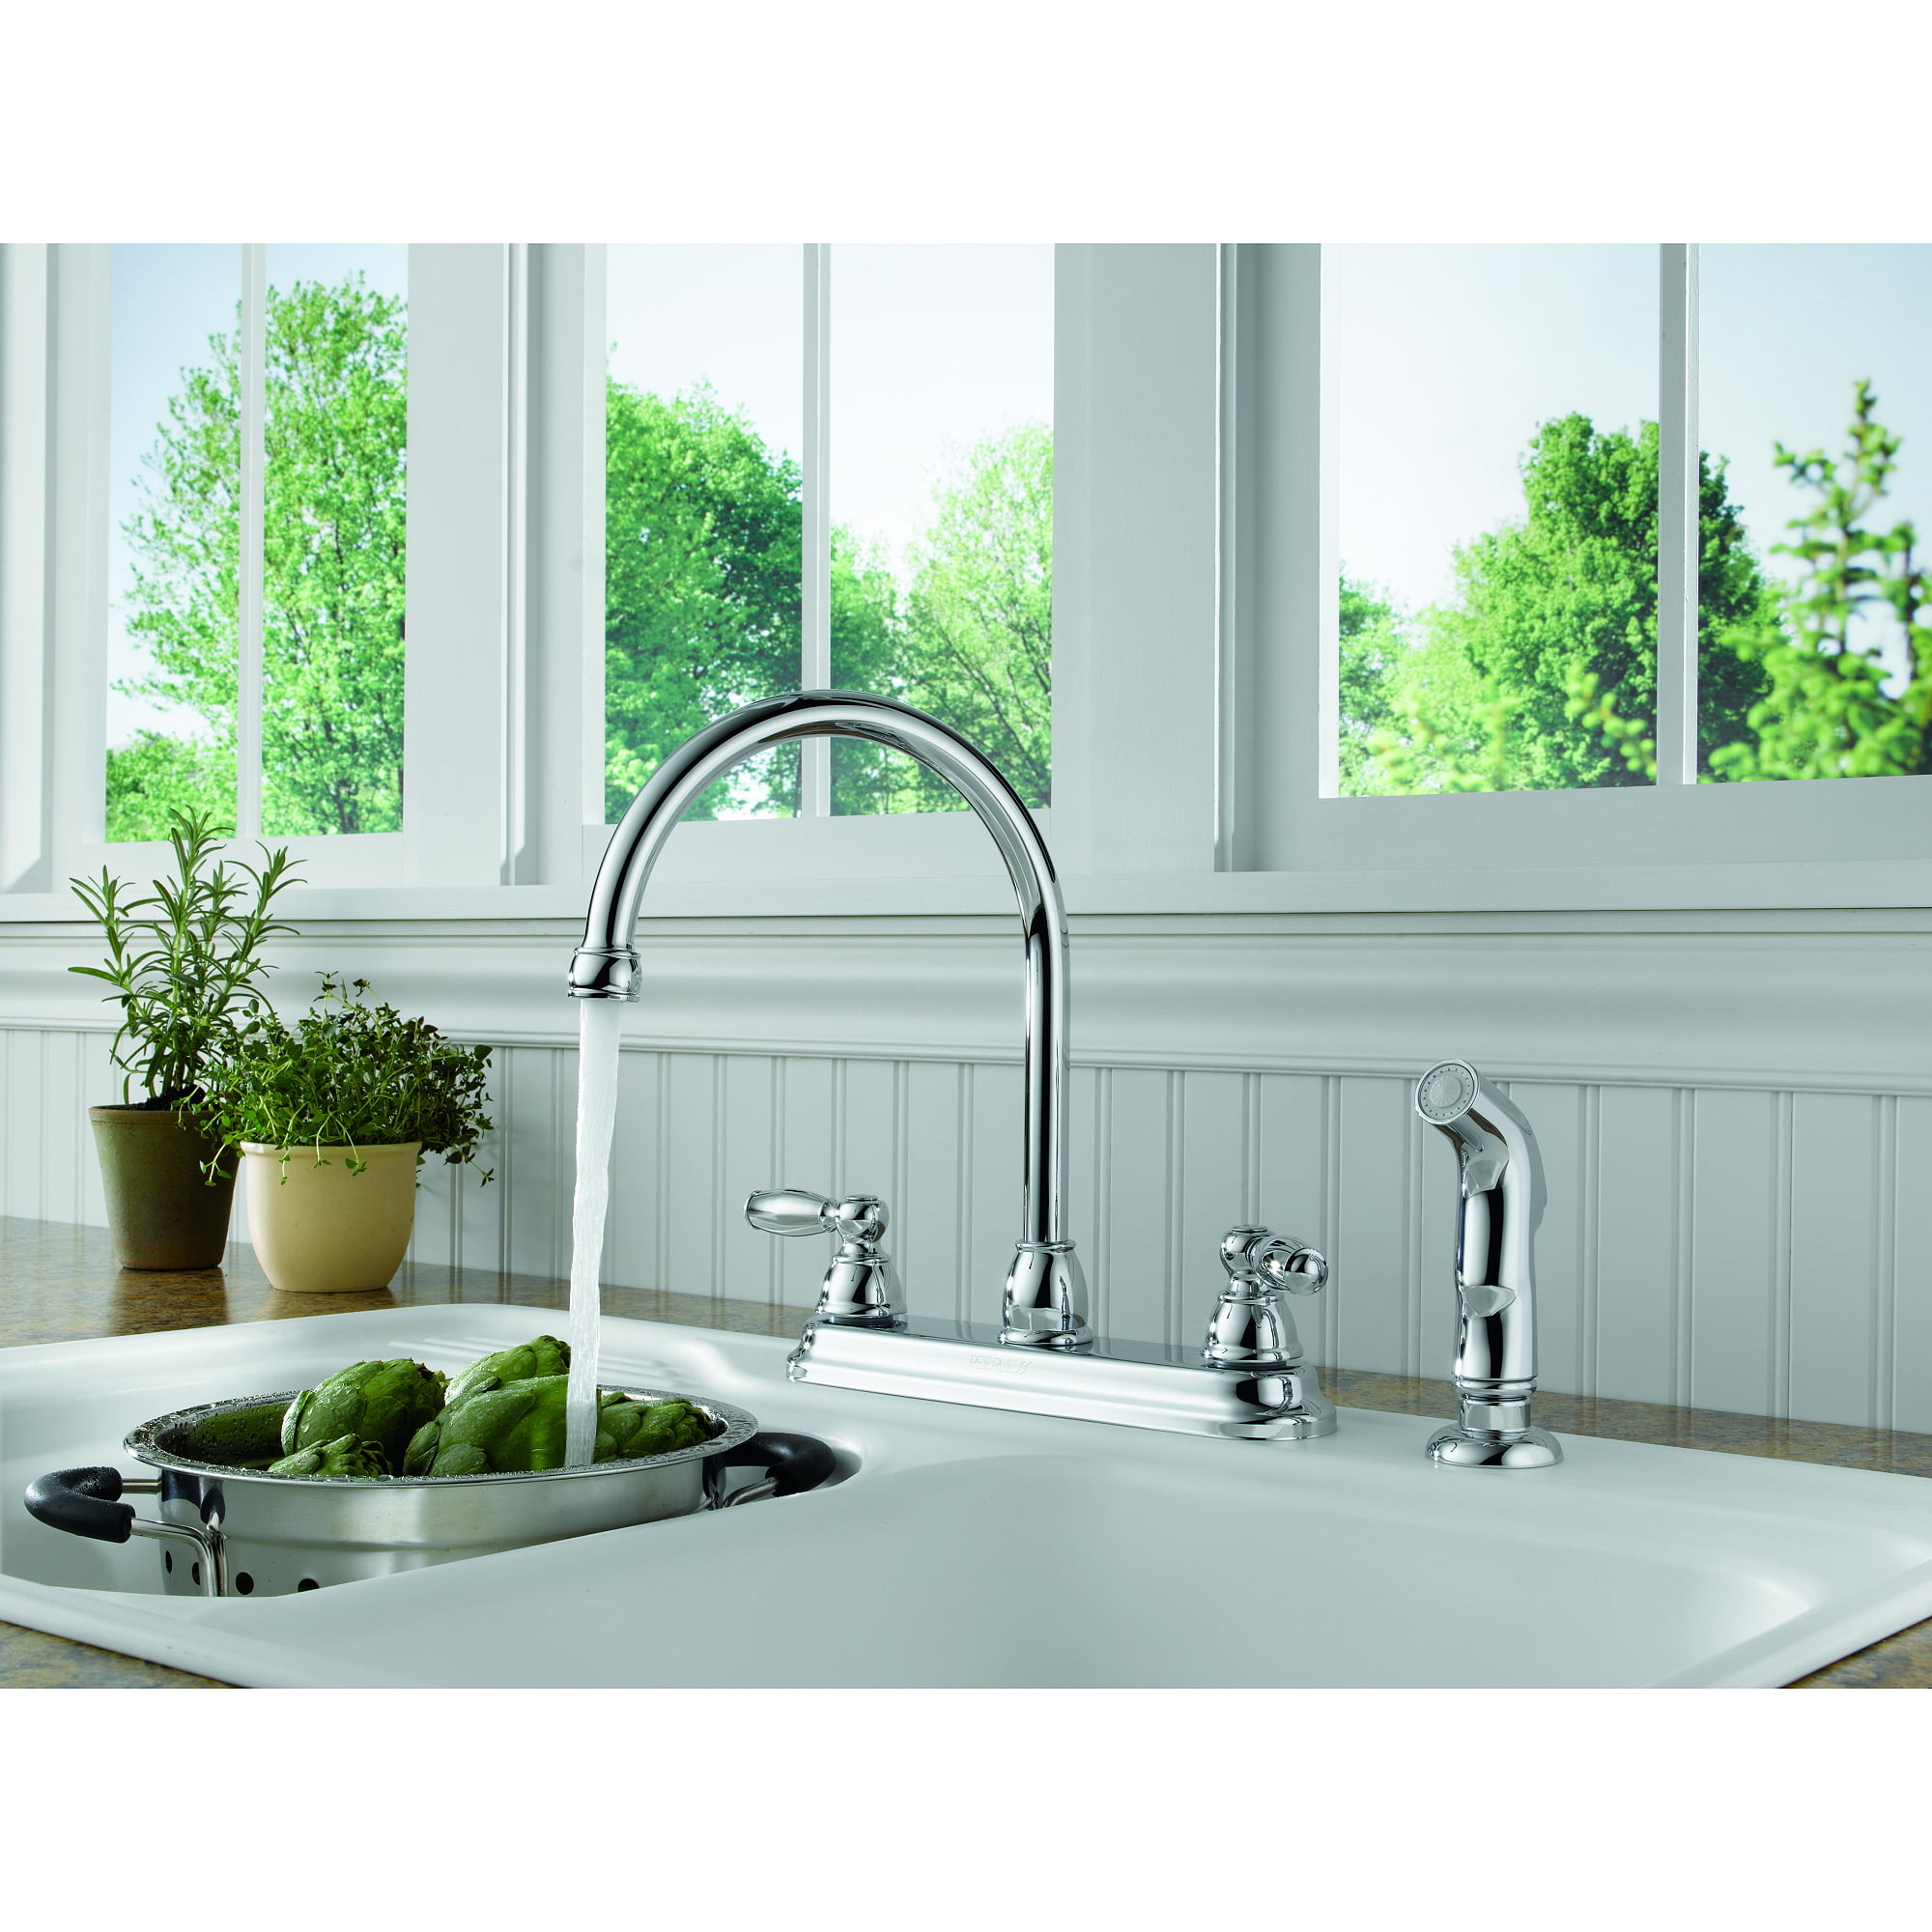 Peerless Two Handle Kitchen Faucet With Side Sprayer Chrome throughout Extraordinary kitchen sink faucets at walmart you should have